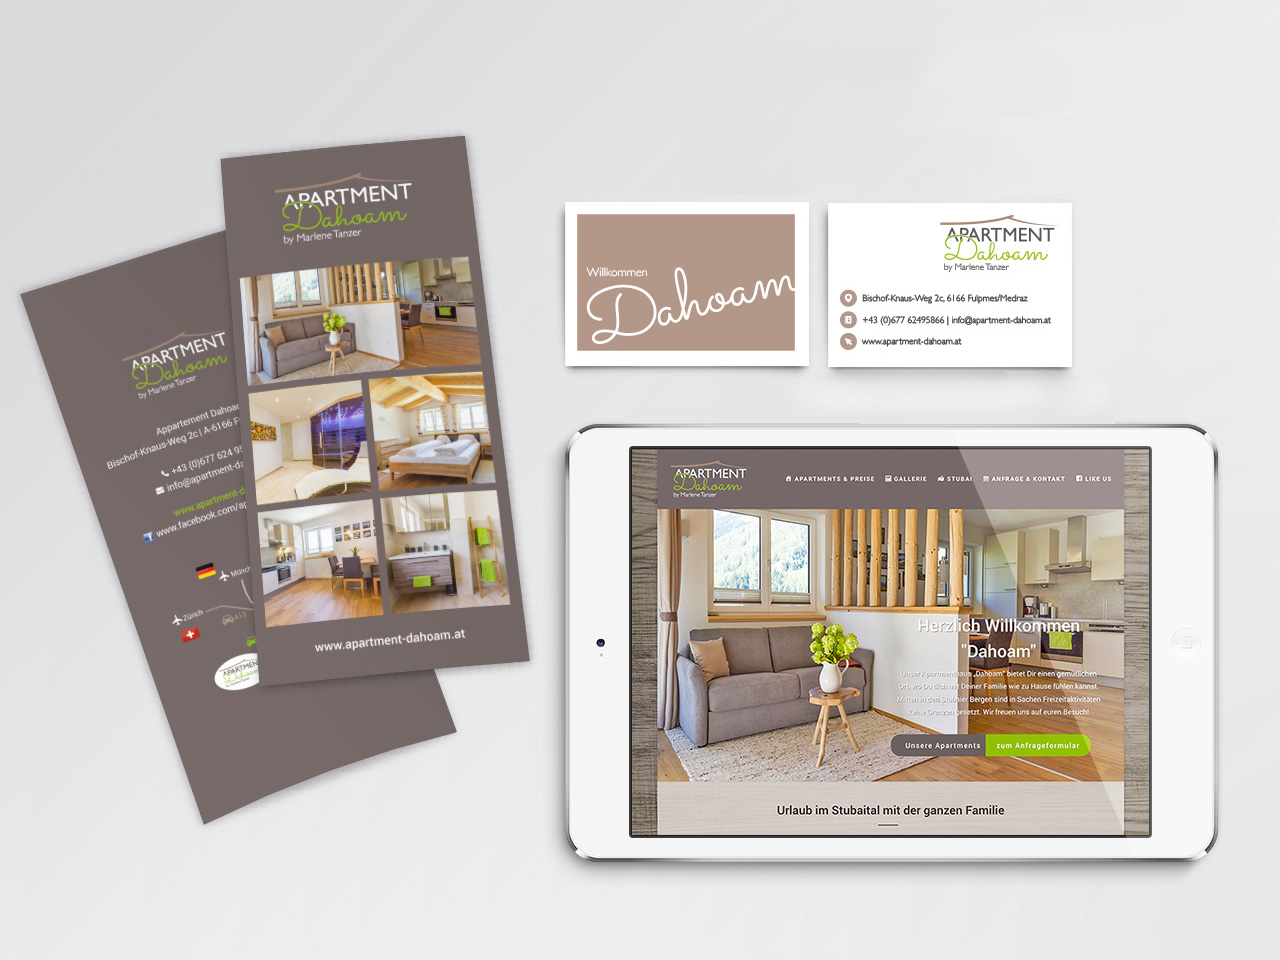 Corporate Design Apartment Dahoam